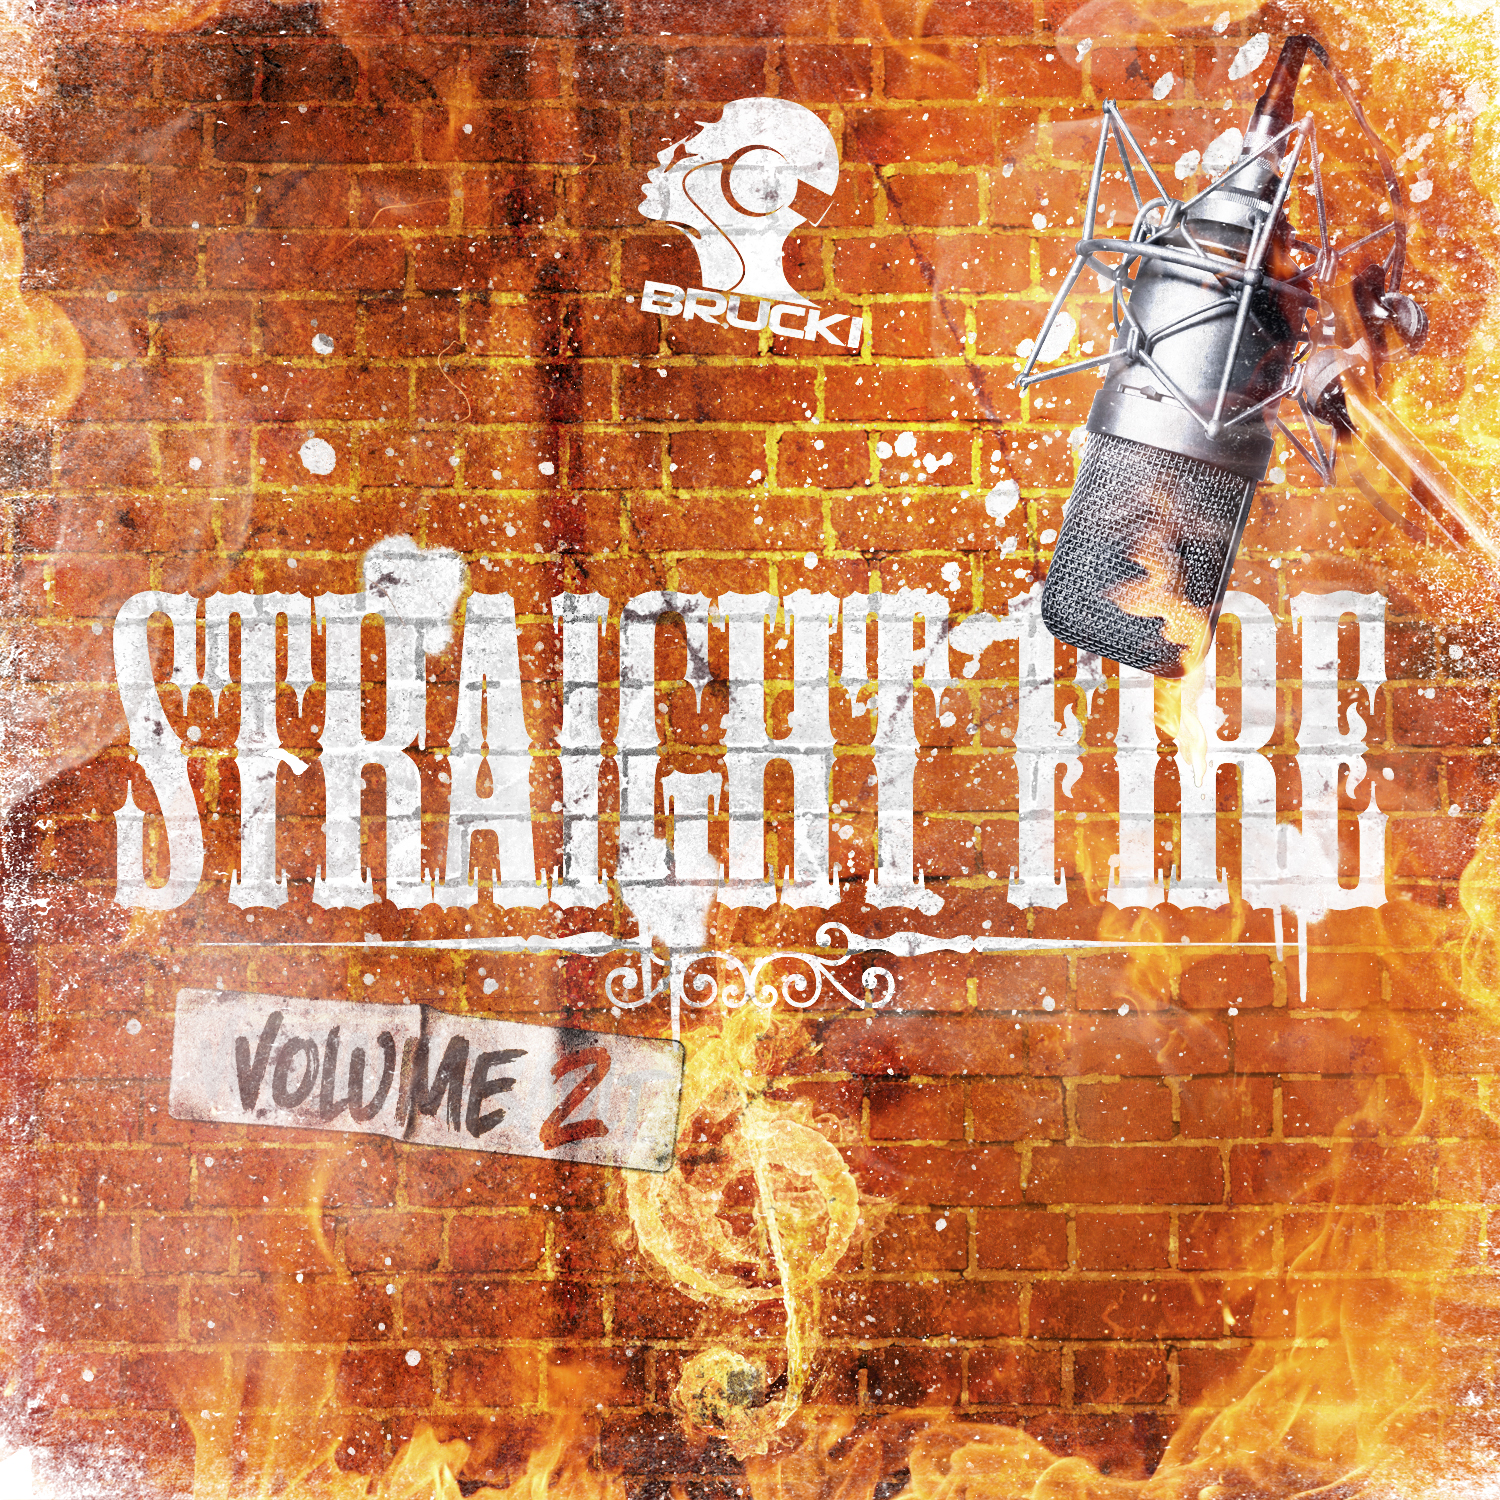 DJ Brucki - Straight Fire 2 (Cover)